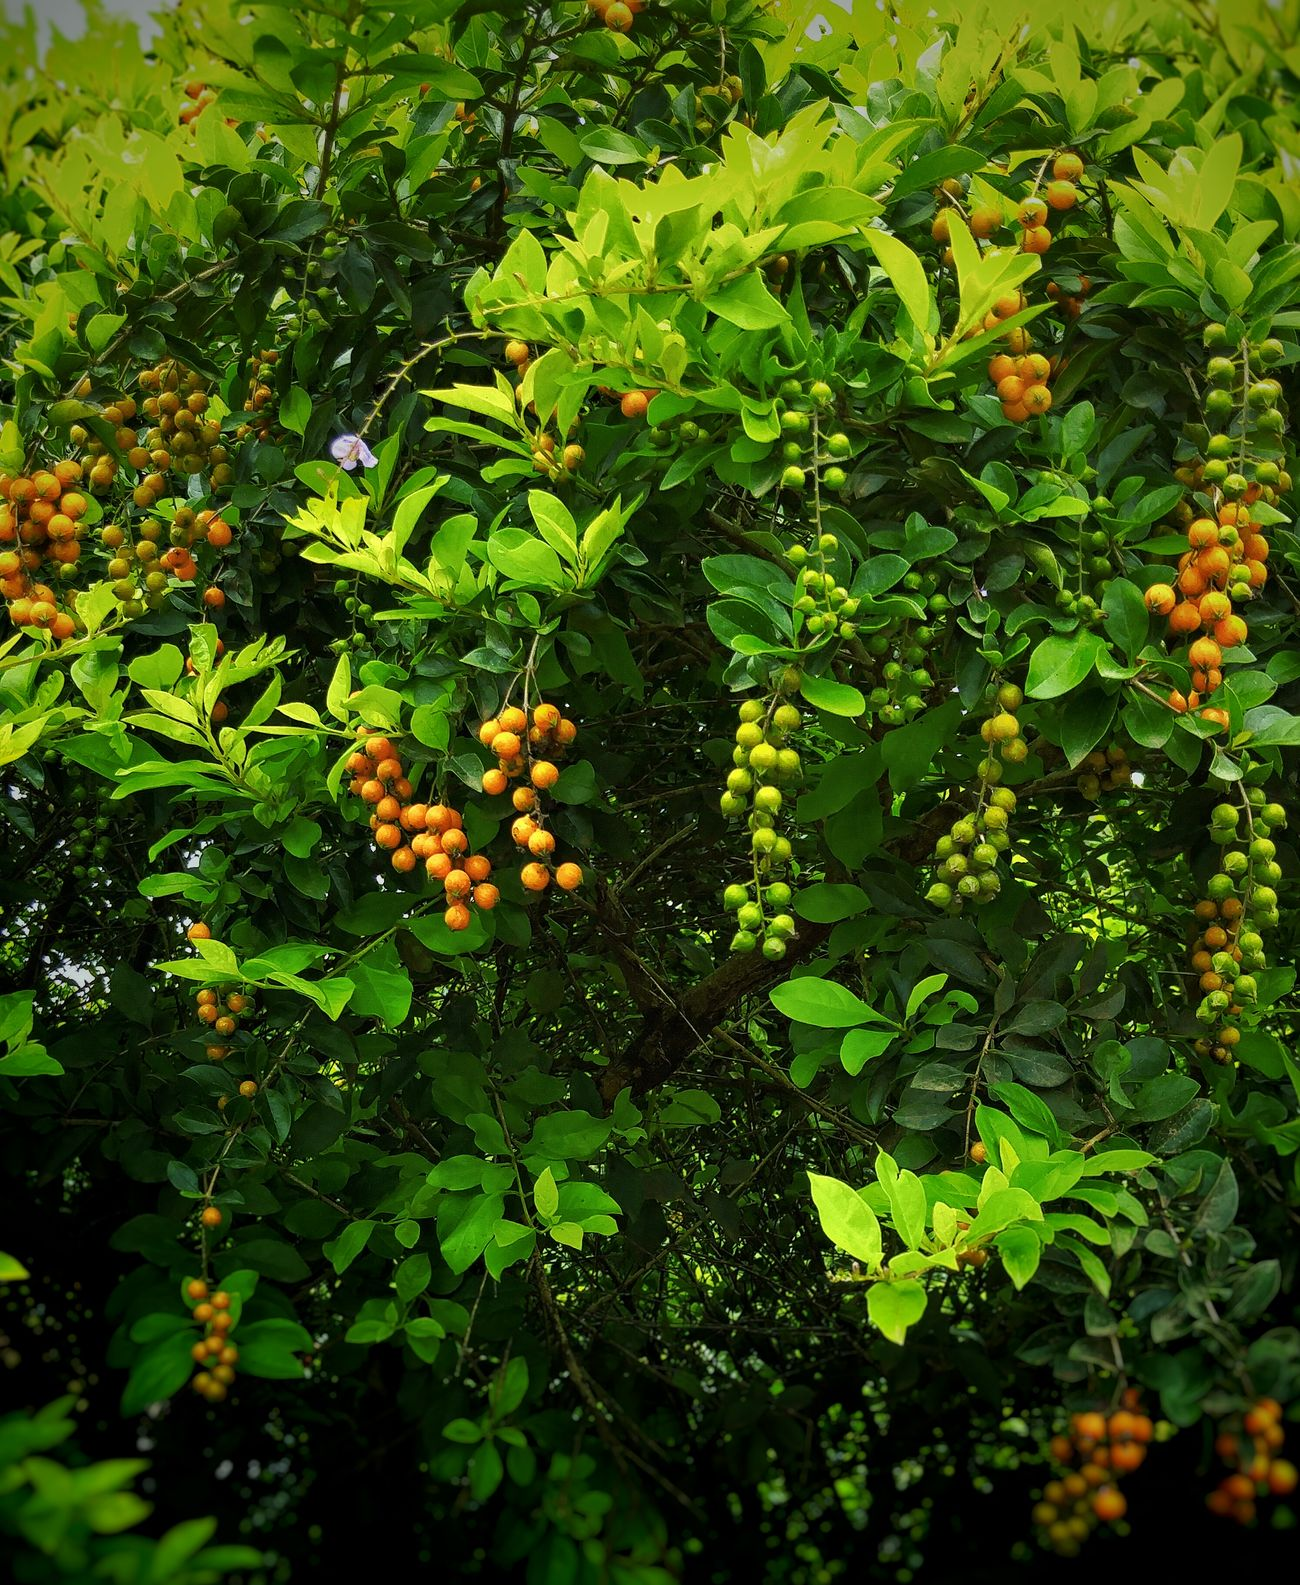 Berrys Fruit Citrus Fruit Green Color Growth Tree Food Nature No People Freshness Food And Drink Outdoors Healthy Eating Leaf Close-up Day